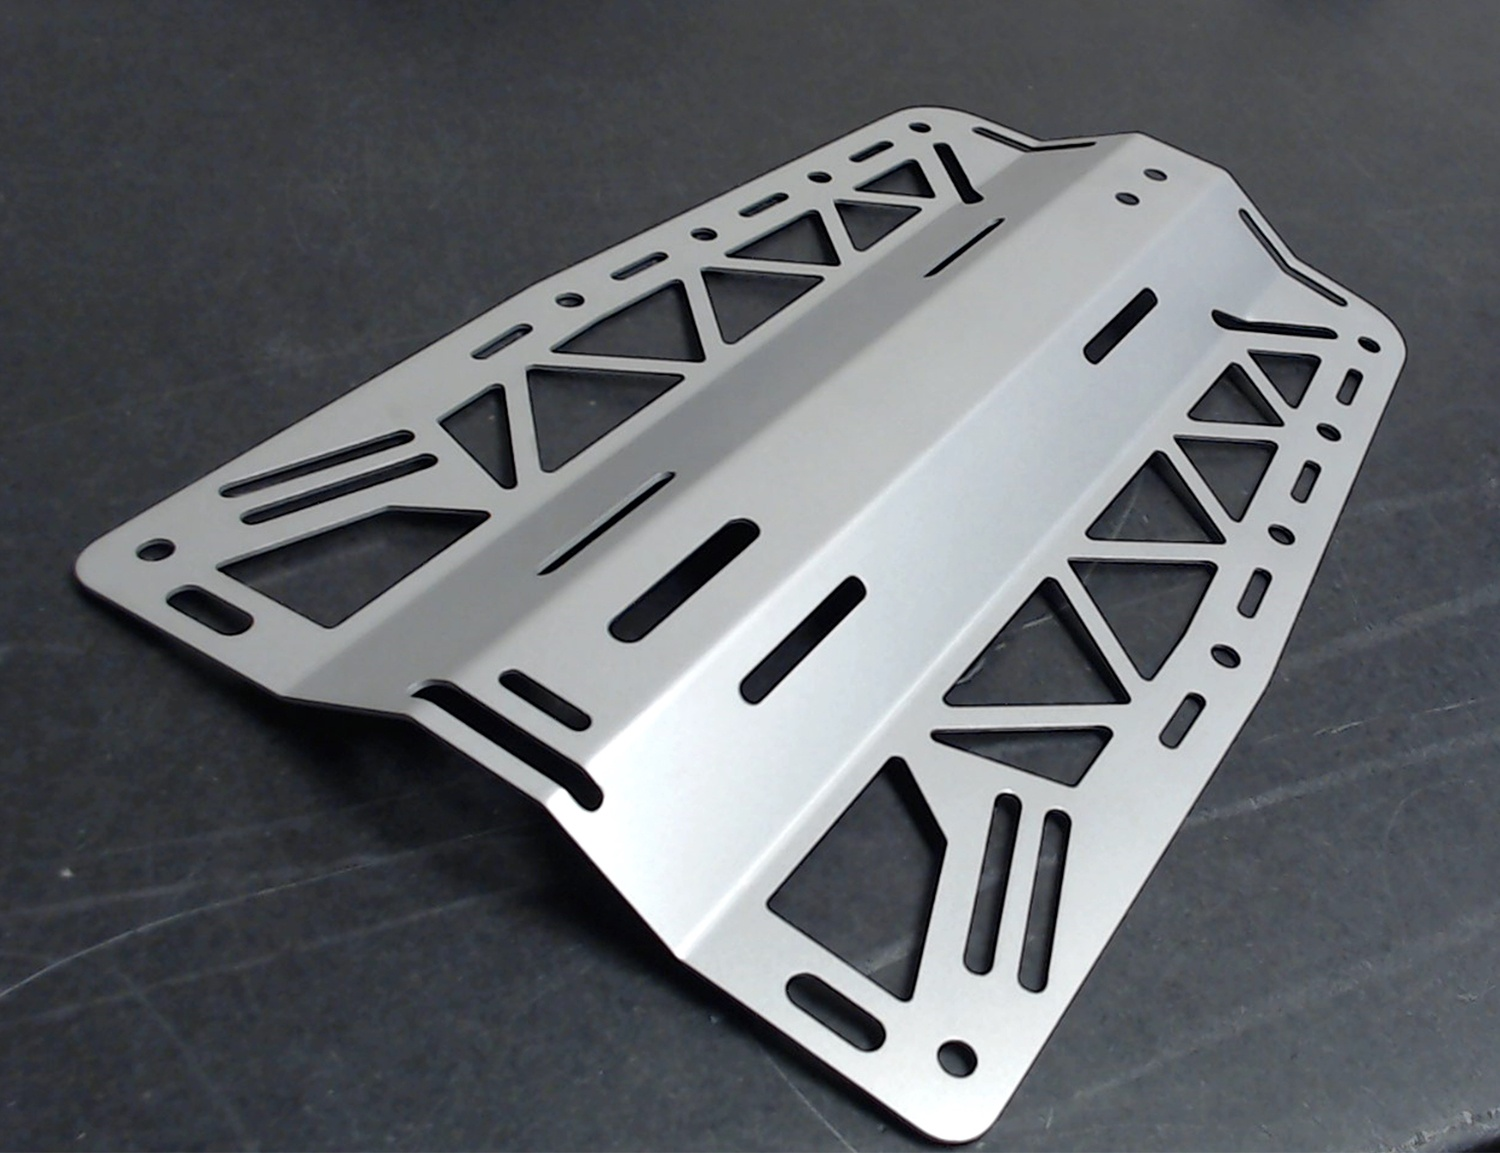 Custom sheet metal fabrications can come in all shapes and sizes--not just baskets and trays, but other components too.